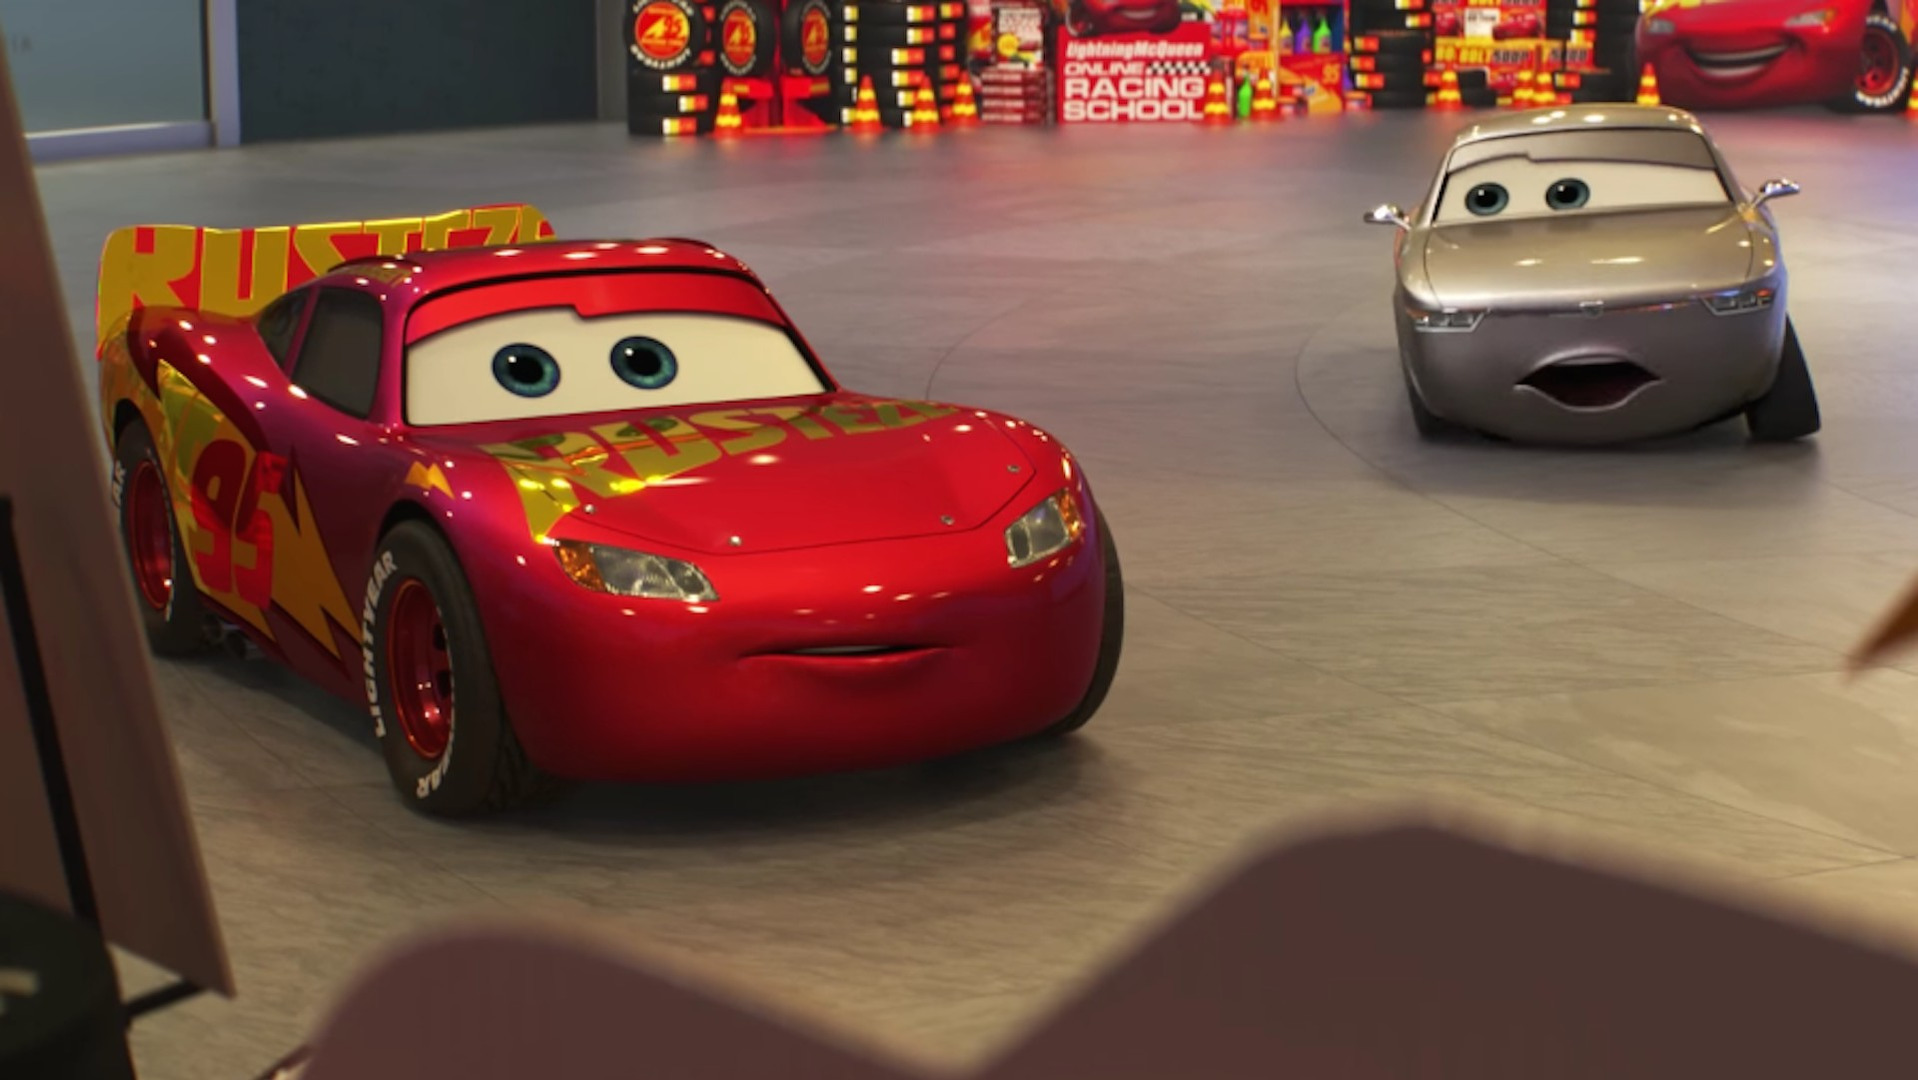 new cars 3 trailer pushes mcqueen to edge of retirement. Black Bedroom Furniture Sets. Home Design Ideas